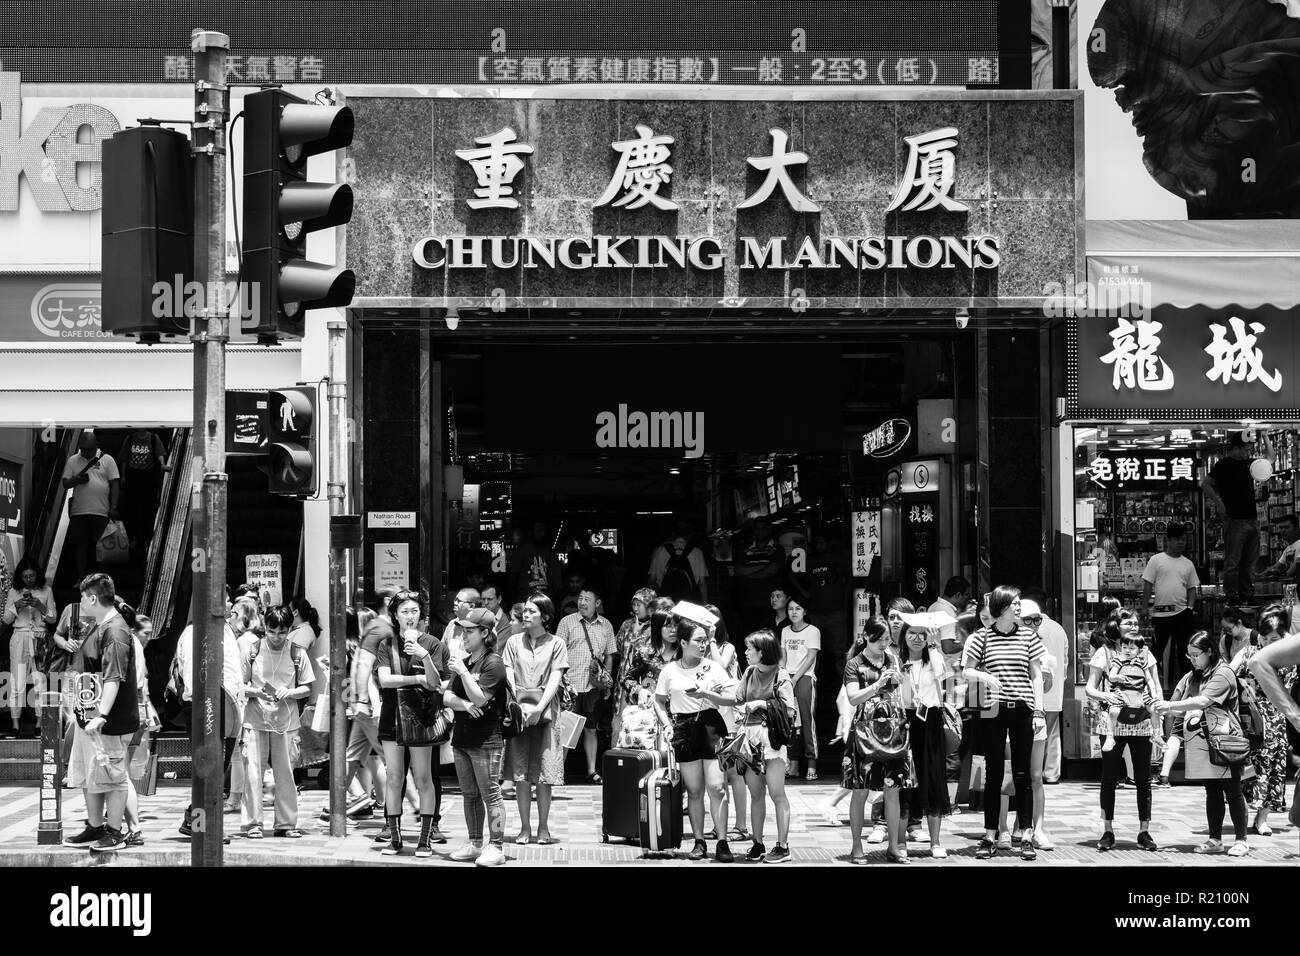 Hong Kong, China - May 16 2018:  People waiting to cross the street in front of the famous Chungking Mansions in Tsim Sha Tsui, Kowloon in Hong Kong. - Stock Image